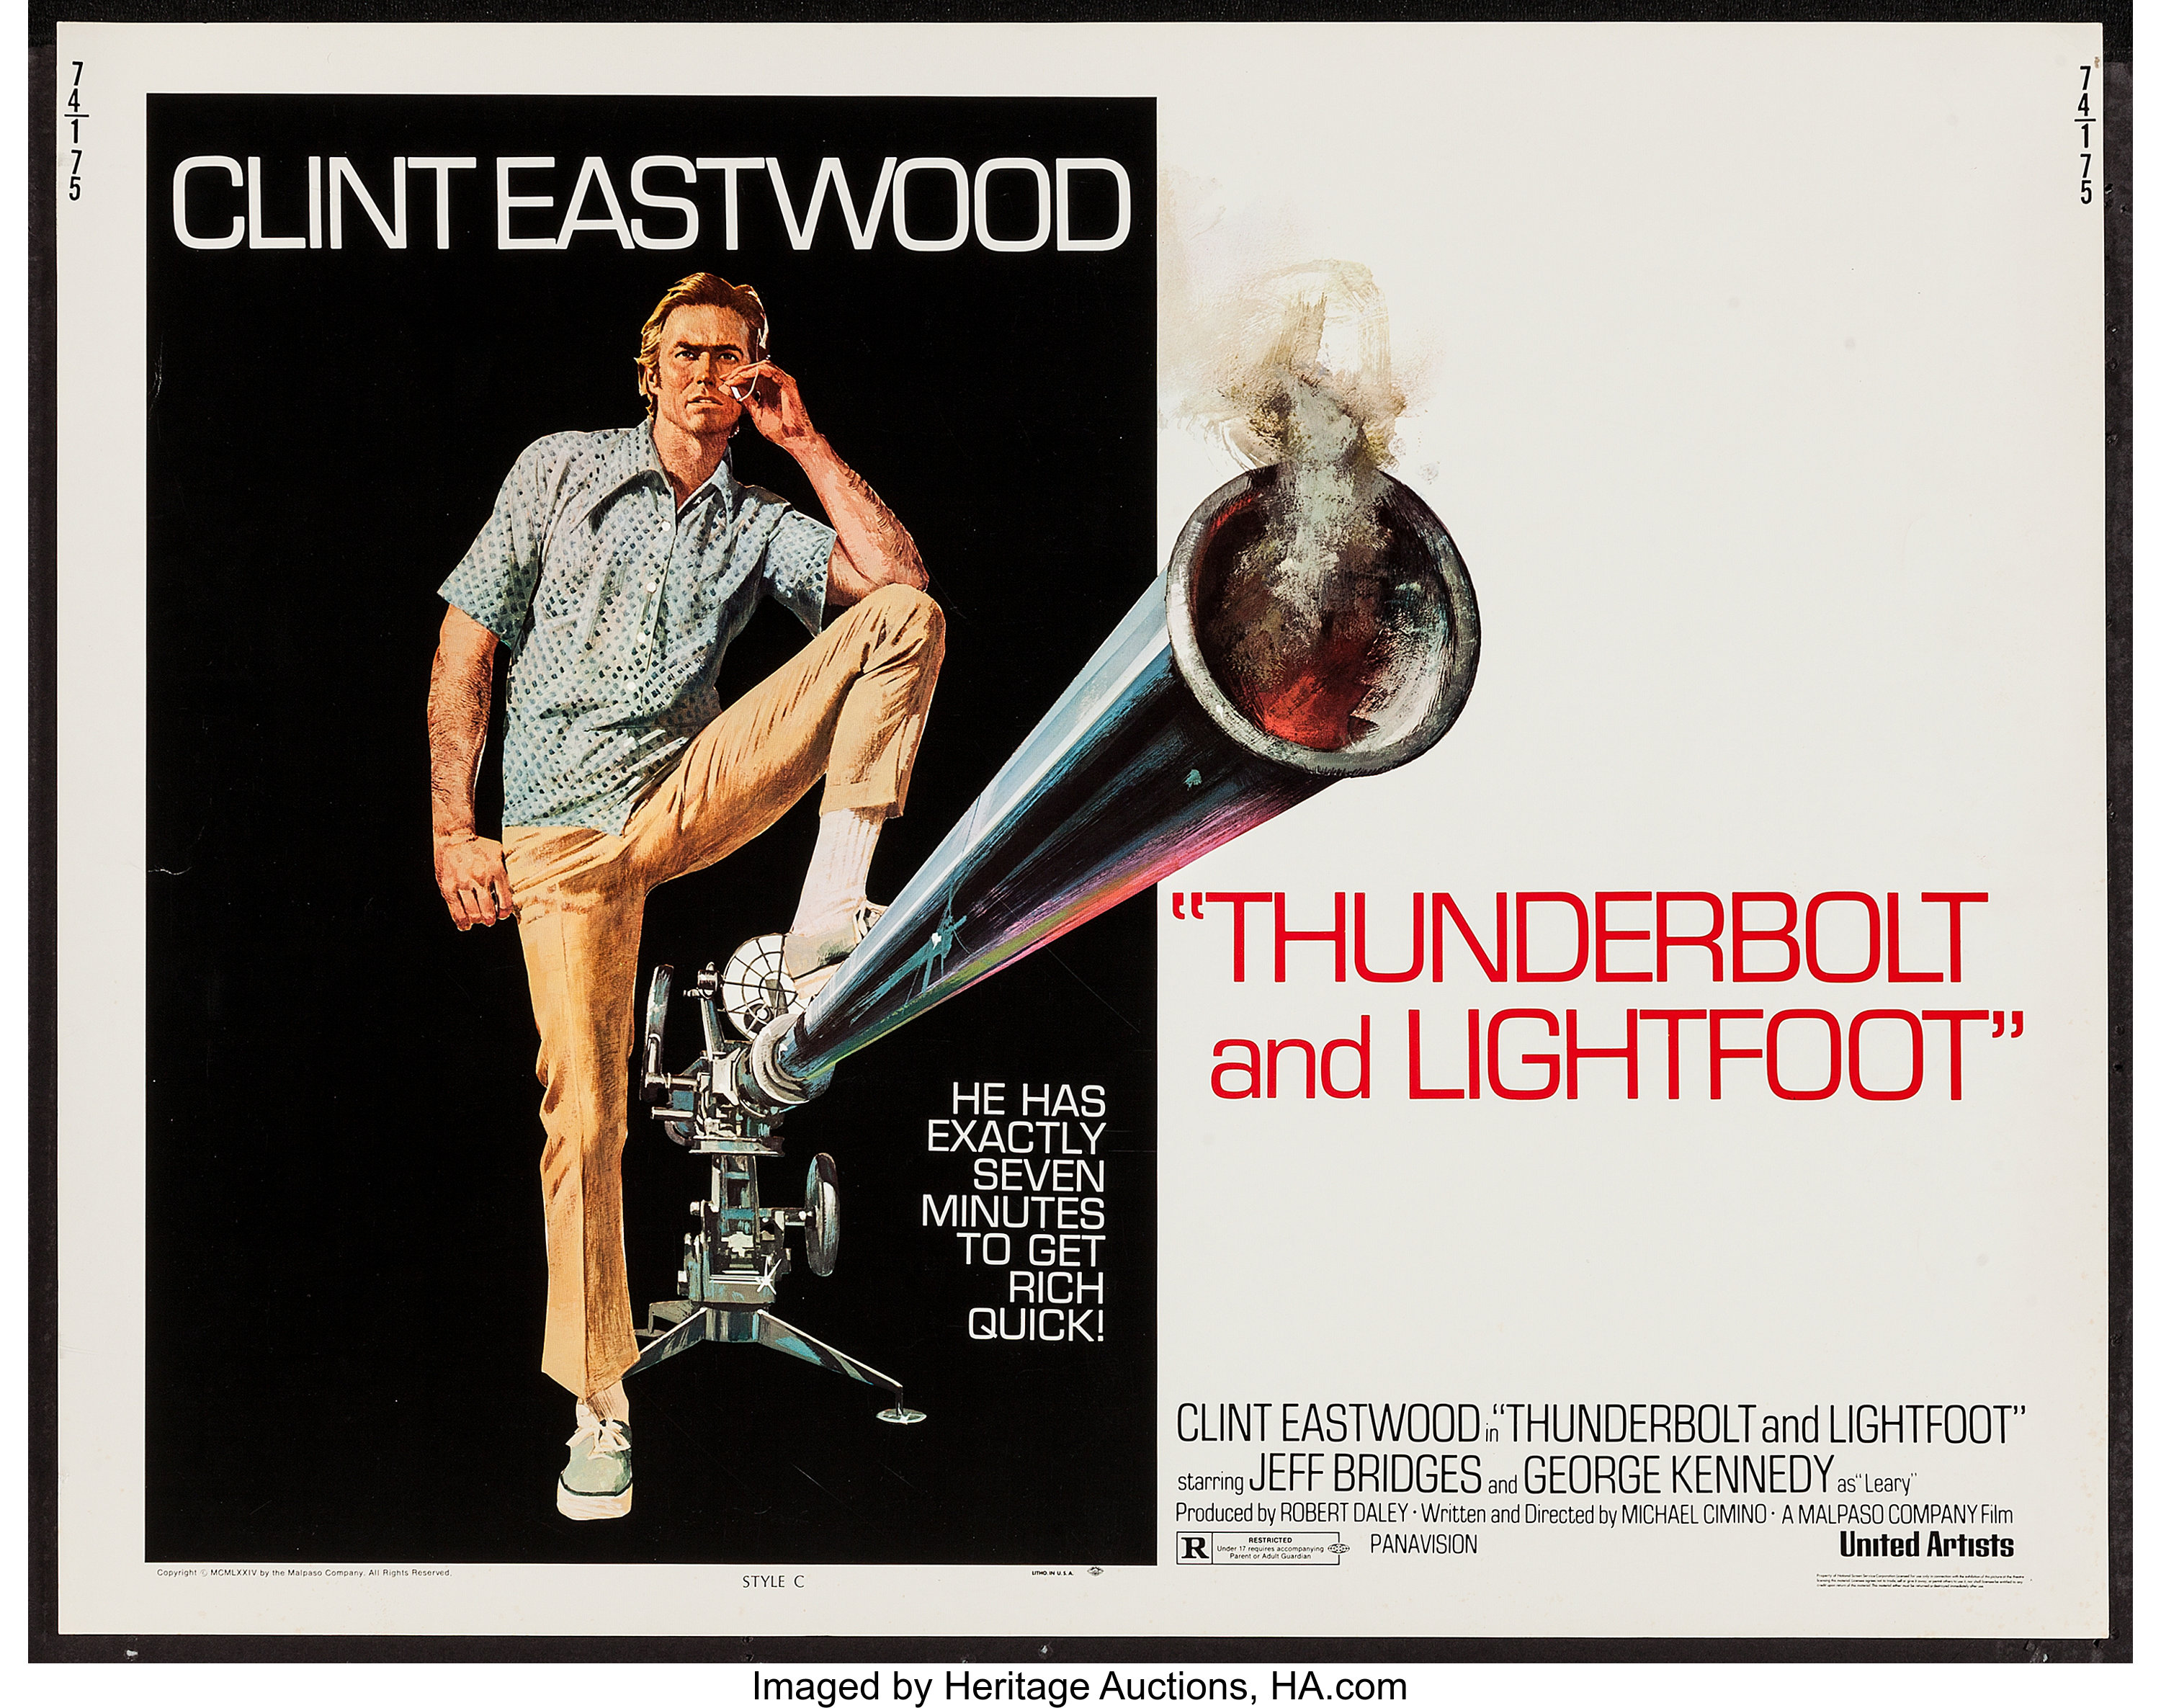 Thunderbolt and Lightfoot & Other Lot (United Artists, 1974). Half   Lot  #54459   Heritage Auctions